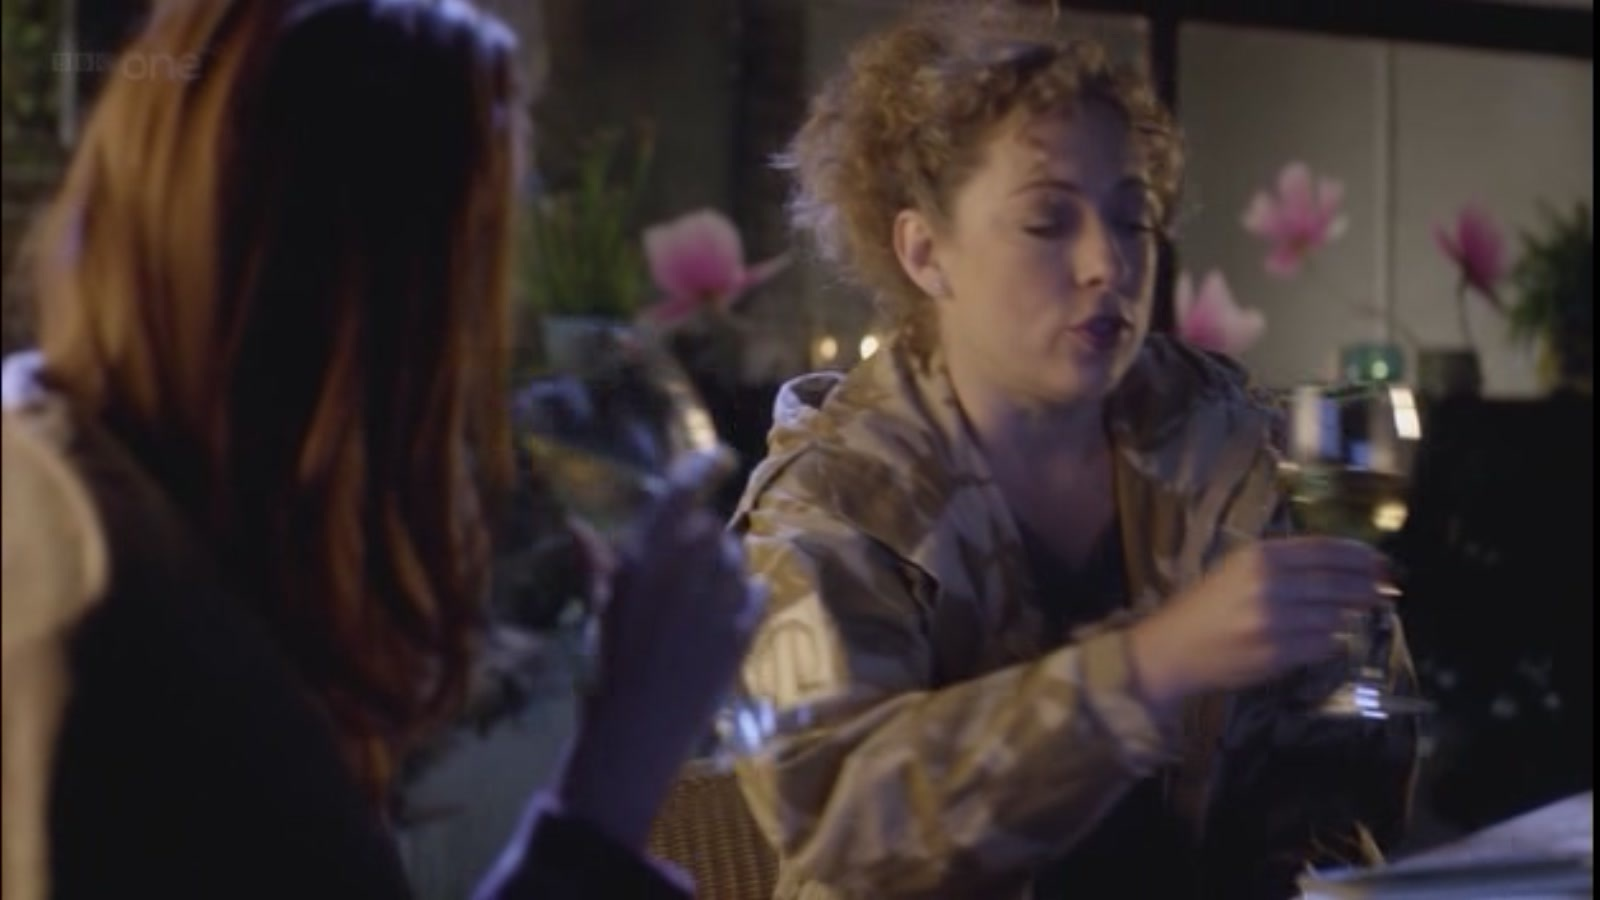 Favorite River Song Quote? [Complete Quotes In Comments